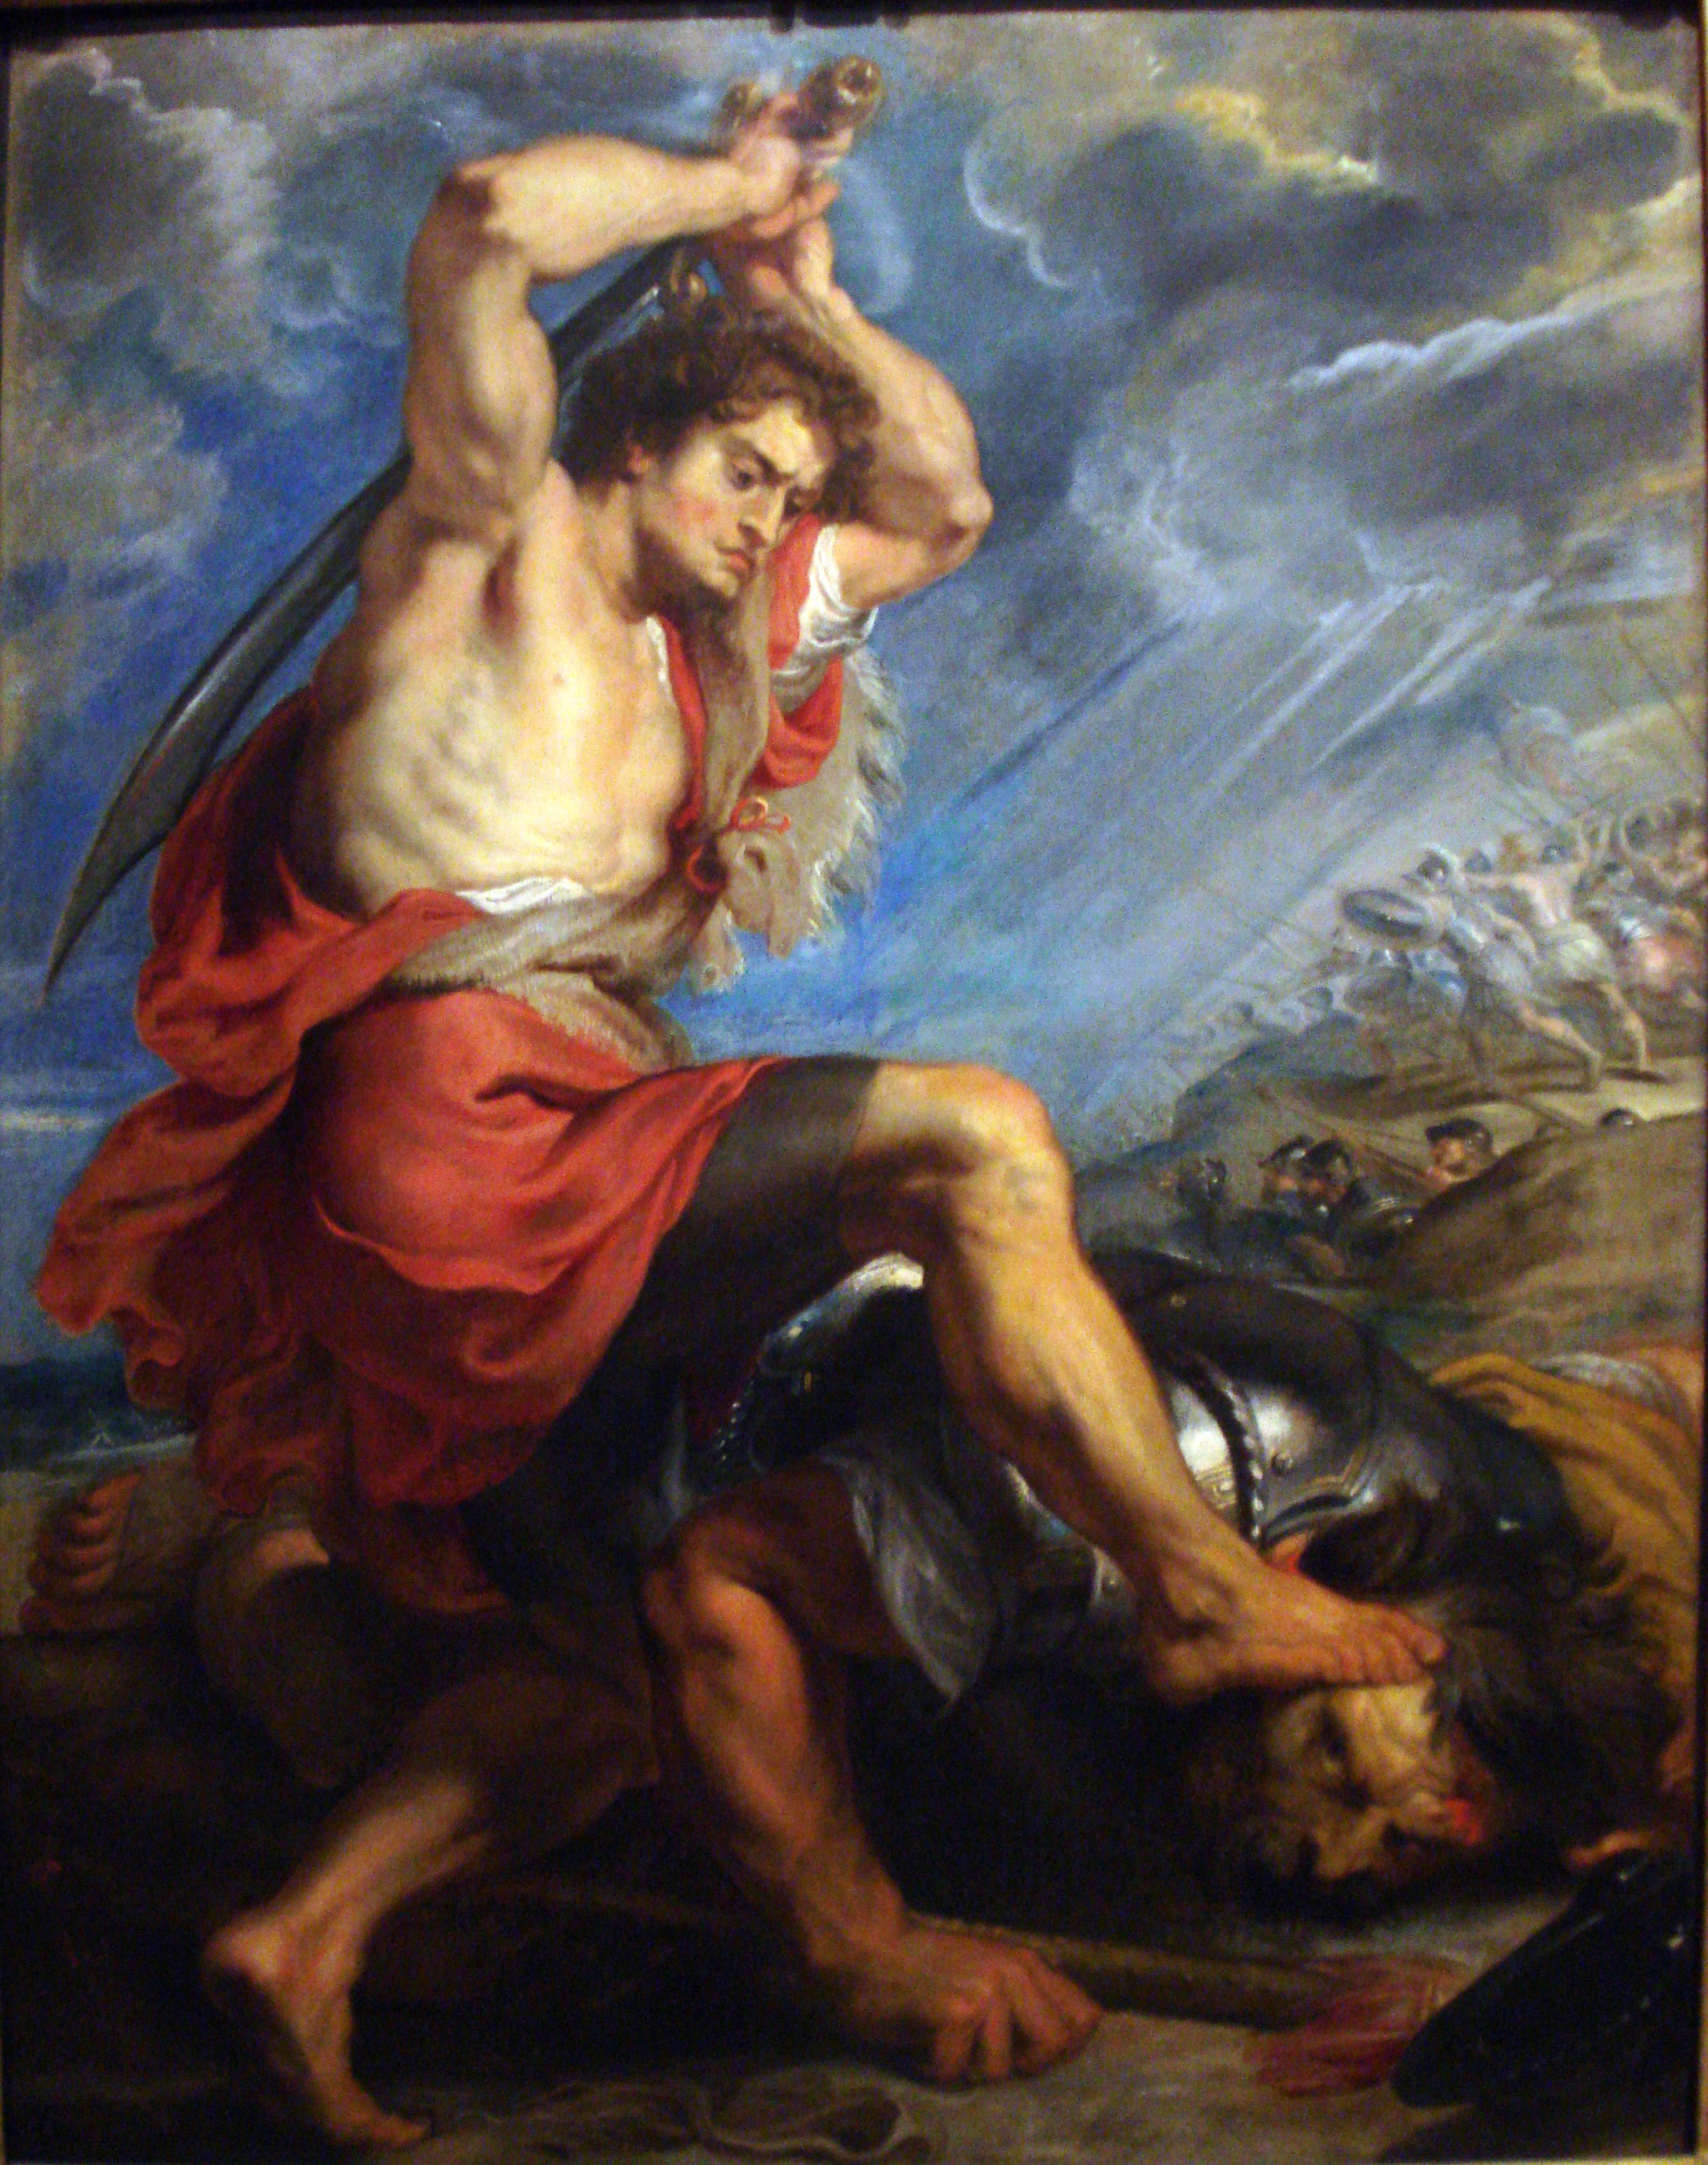 David_Slaying_Goliath_by_Peter_Paul_Rubens